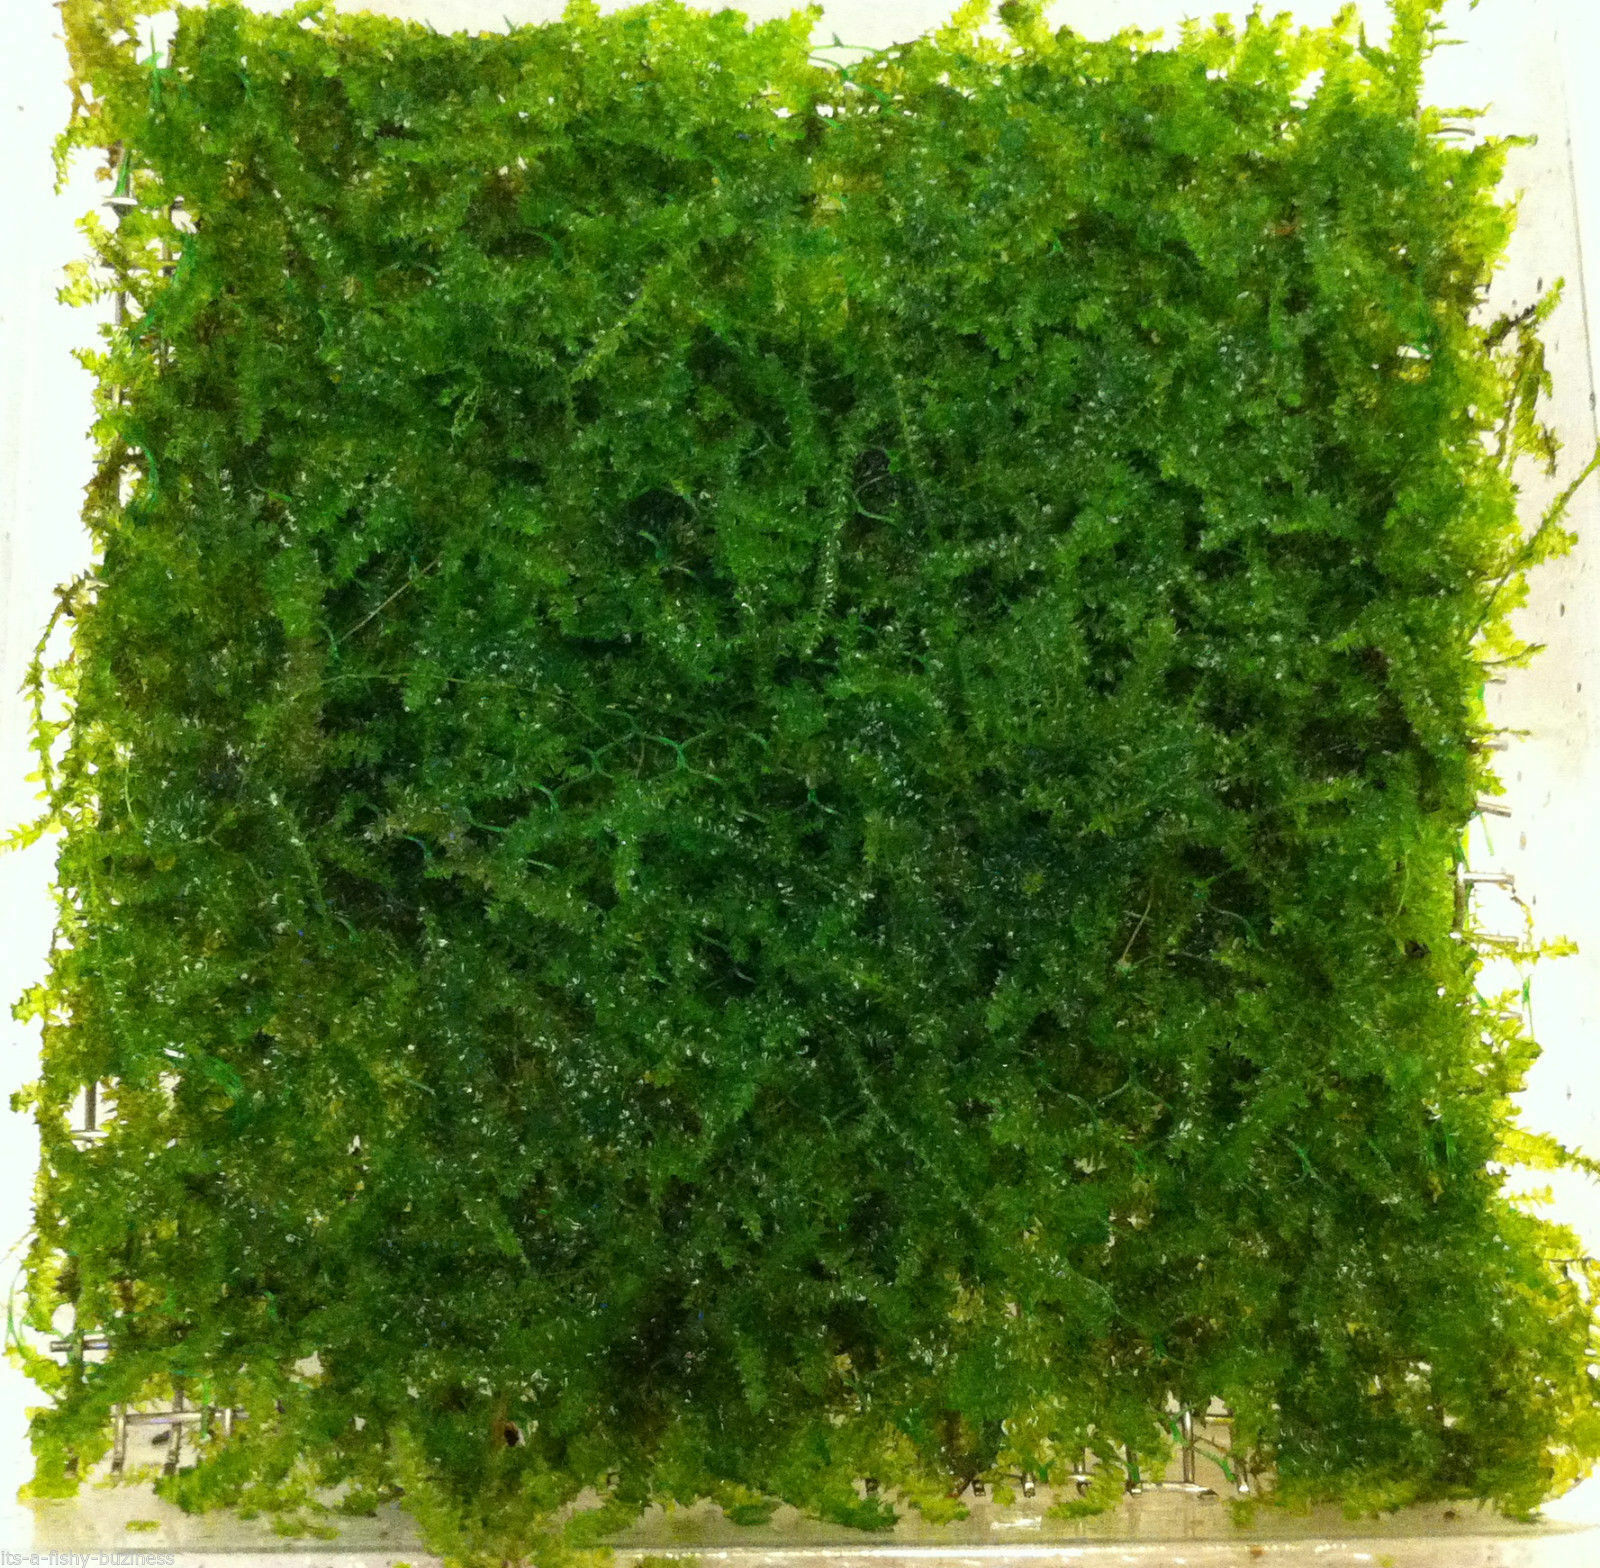 Christmas Xmas Moss Vesicularia Montagnei 4x3 cm Pad Plants jave co2